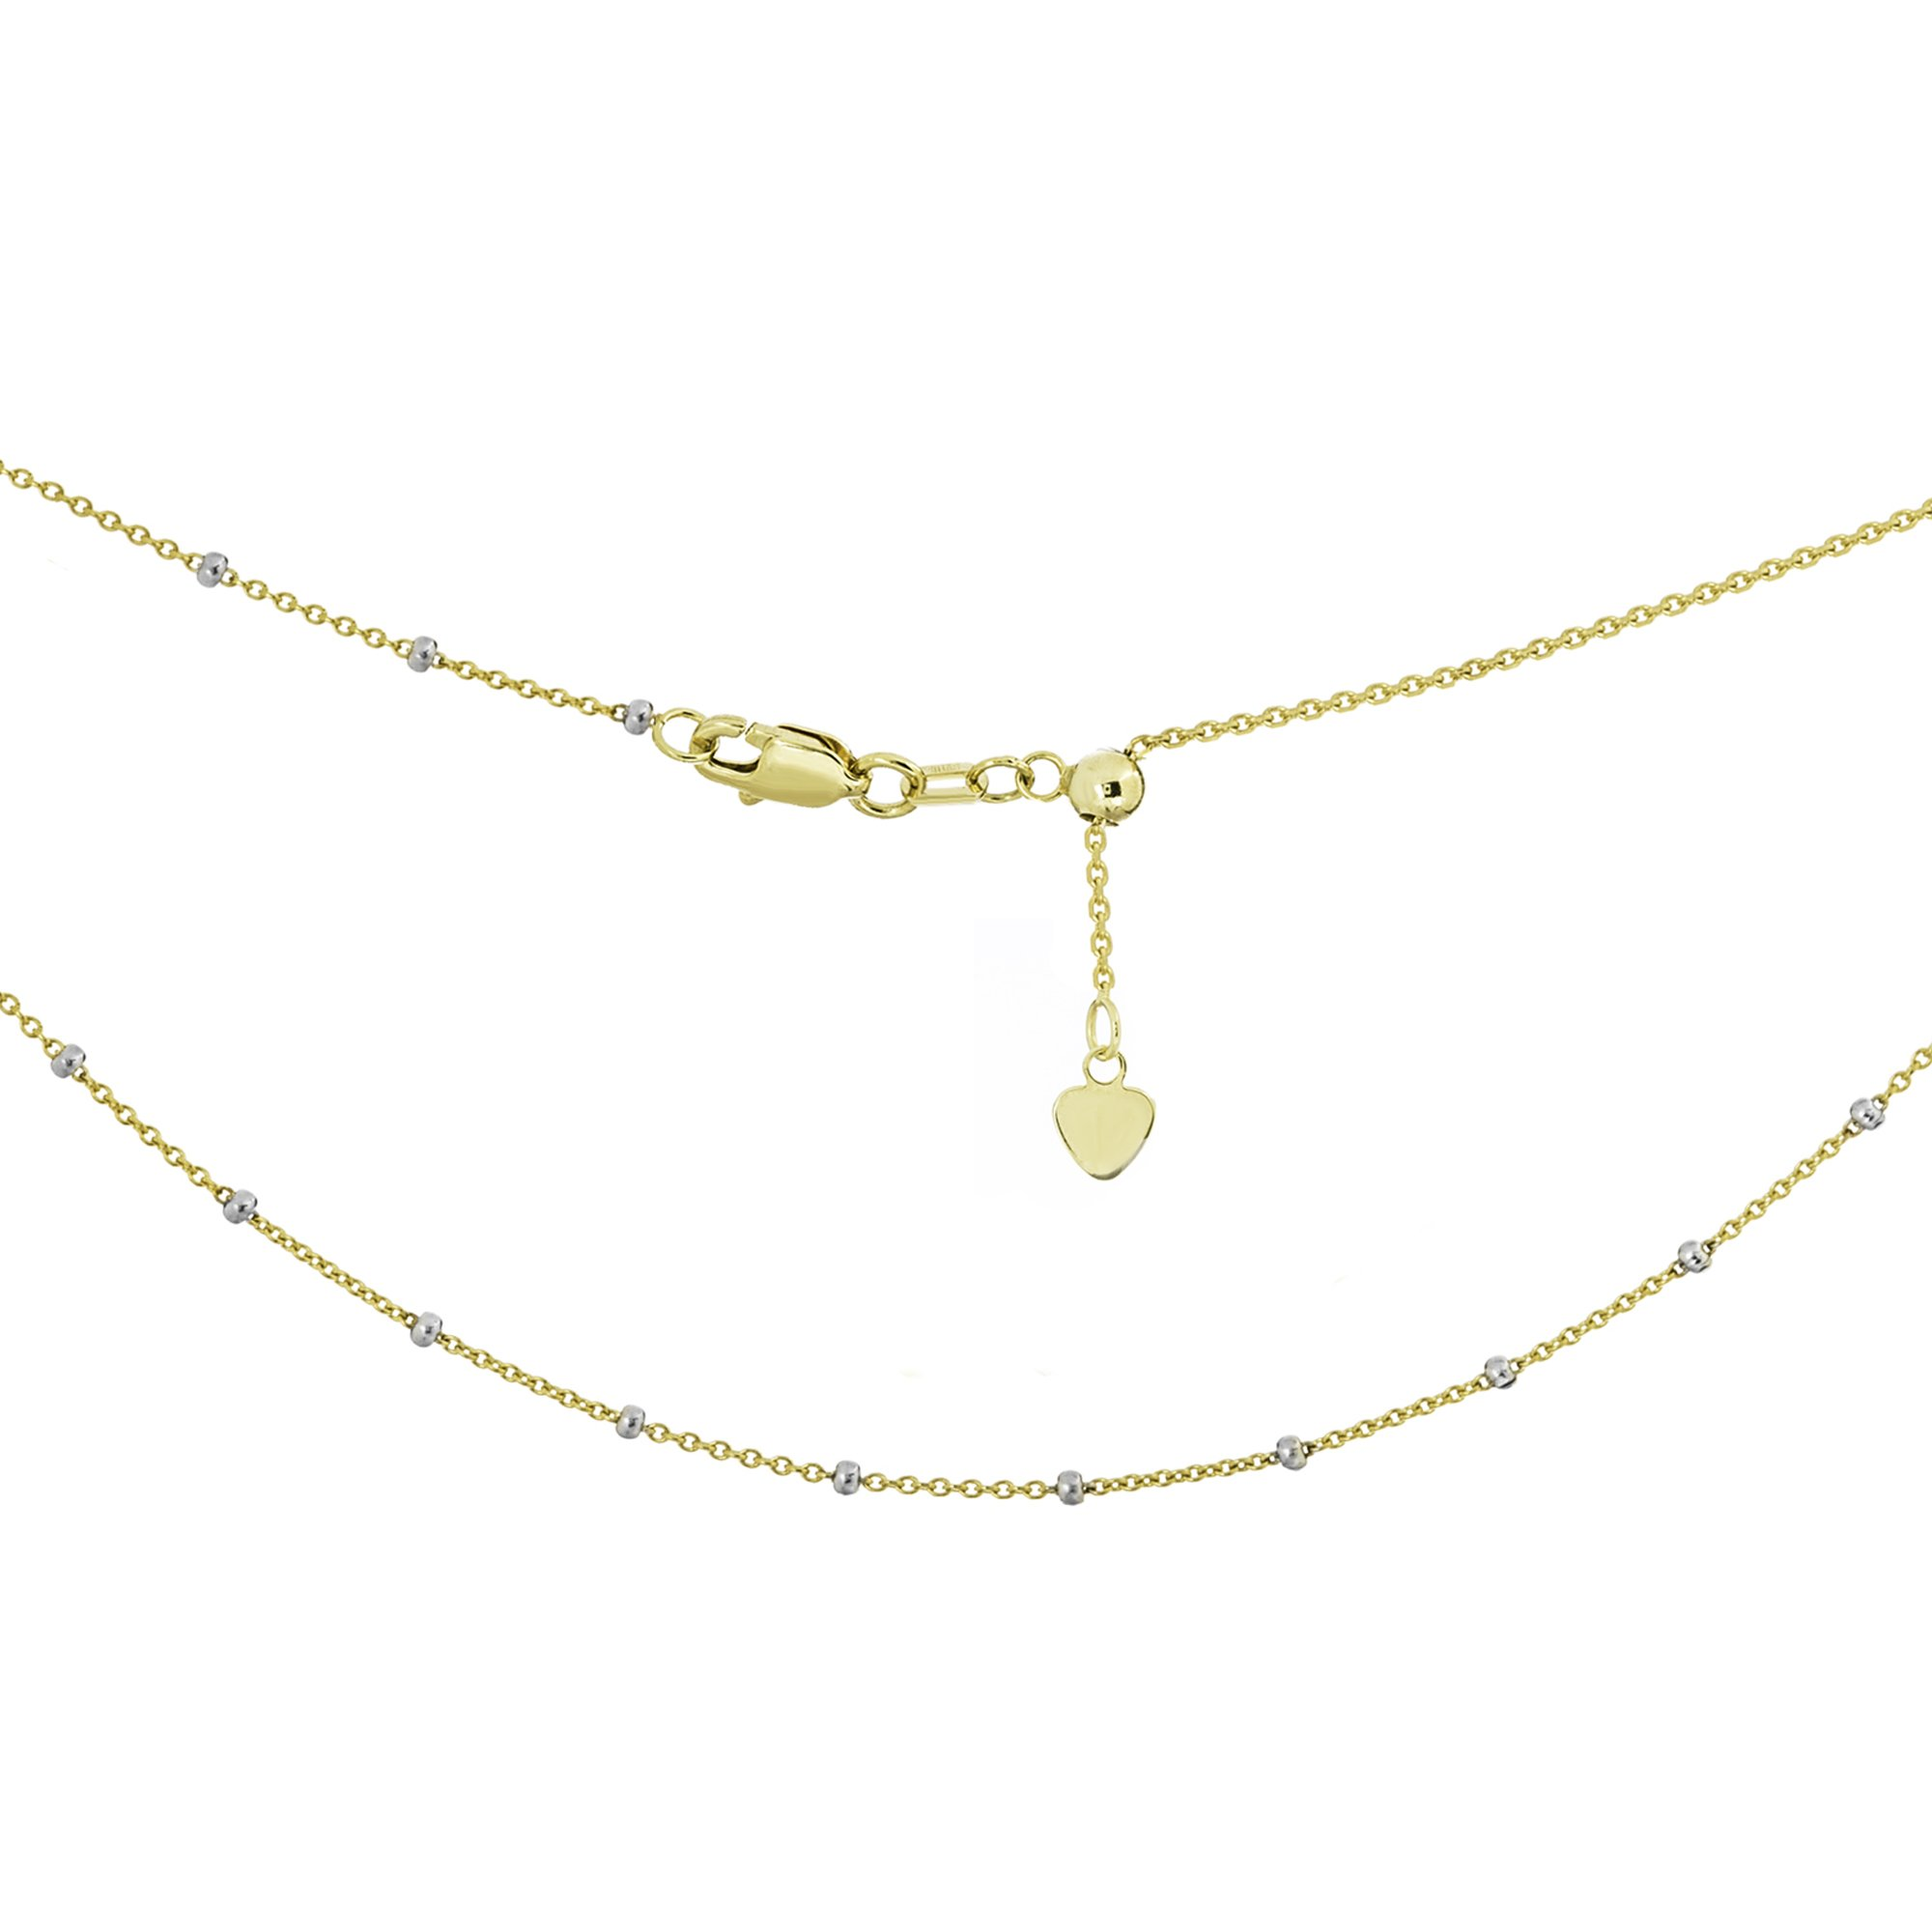 Ritastephens 14k Yellow White Gold Two Tone Saturn Beaded Station Adjustable Choker Necklace